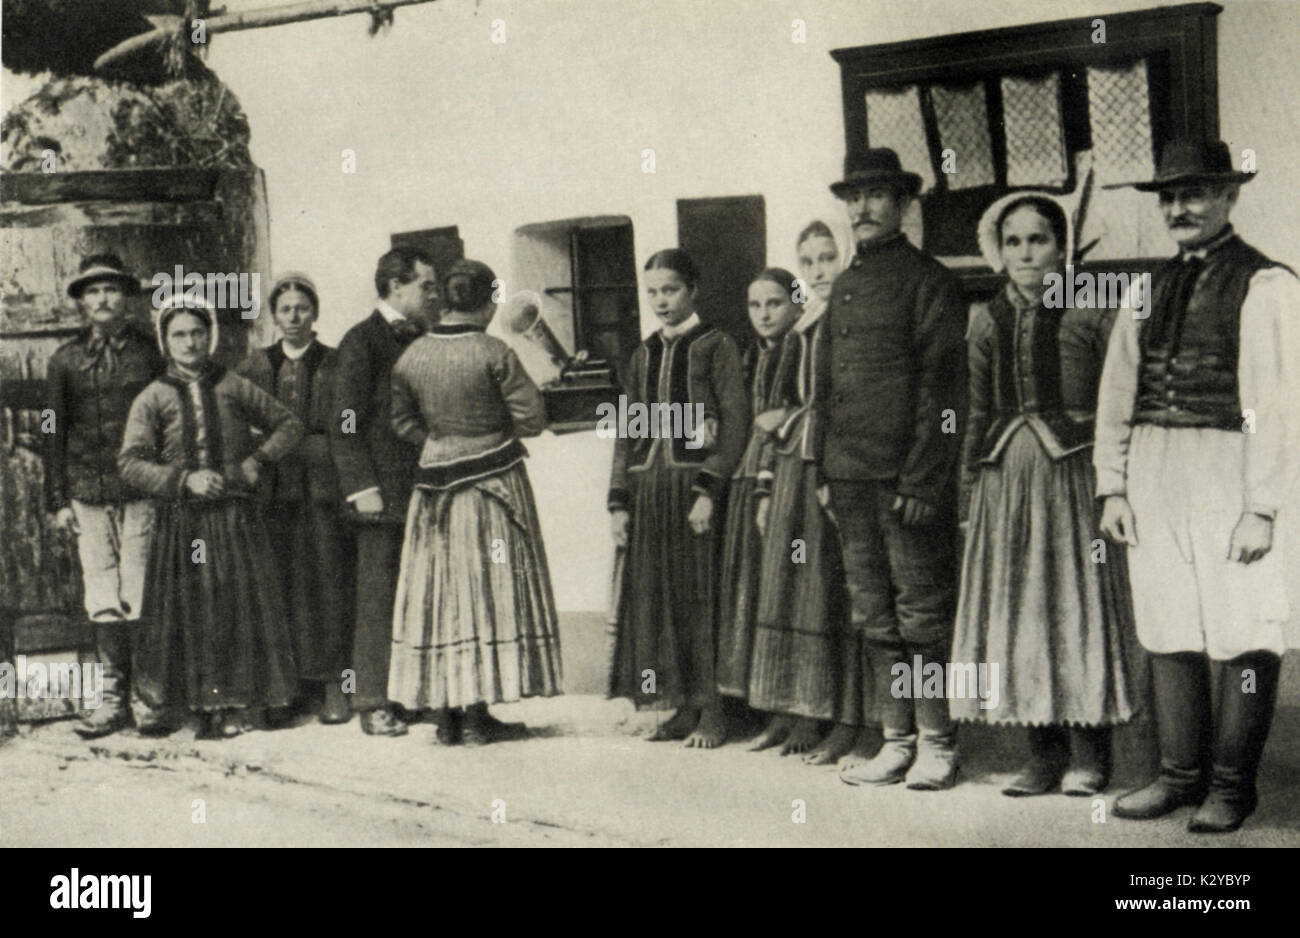 Bela Bartok  collecting Slovak folk songs, 1907 in village of Zobordarazs in Nyitra County (now Drazovce, the Czech Republic), making a recording.   Hungarian composer & pianist,  1881-1945 Stock Photo